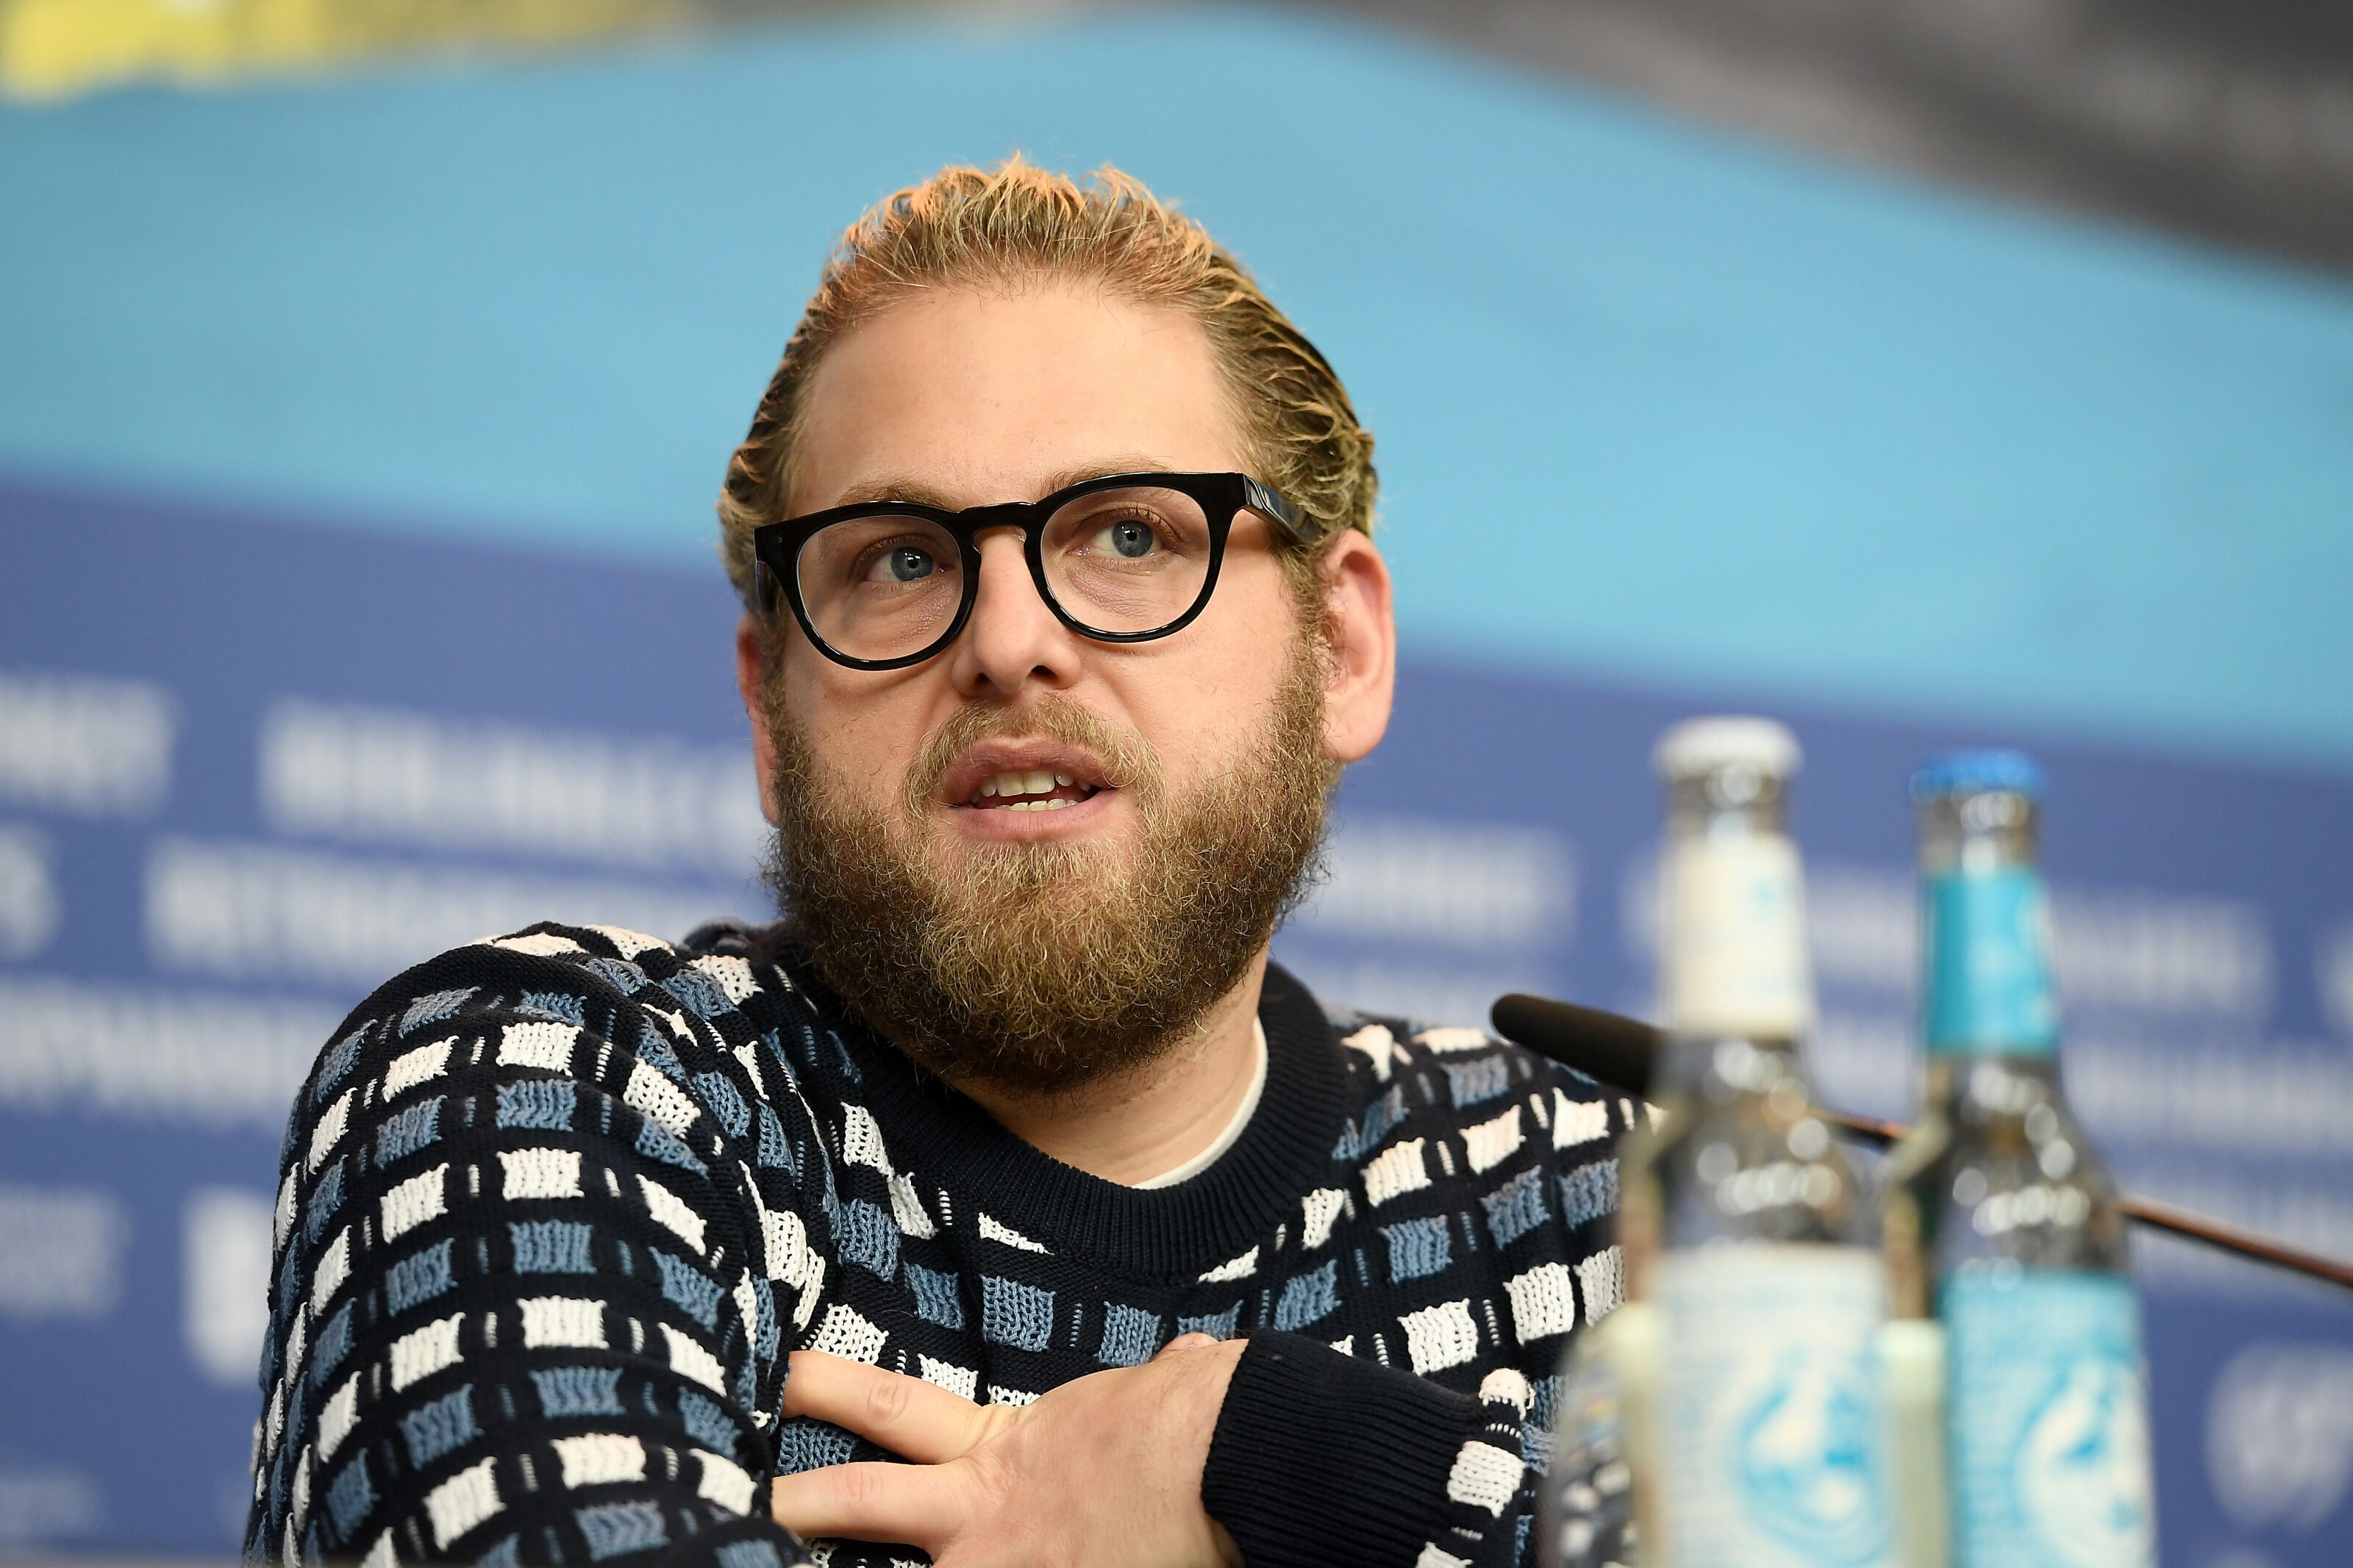 The Batman: Talks have broken down with Jonah Hill